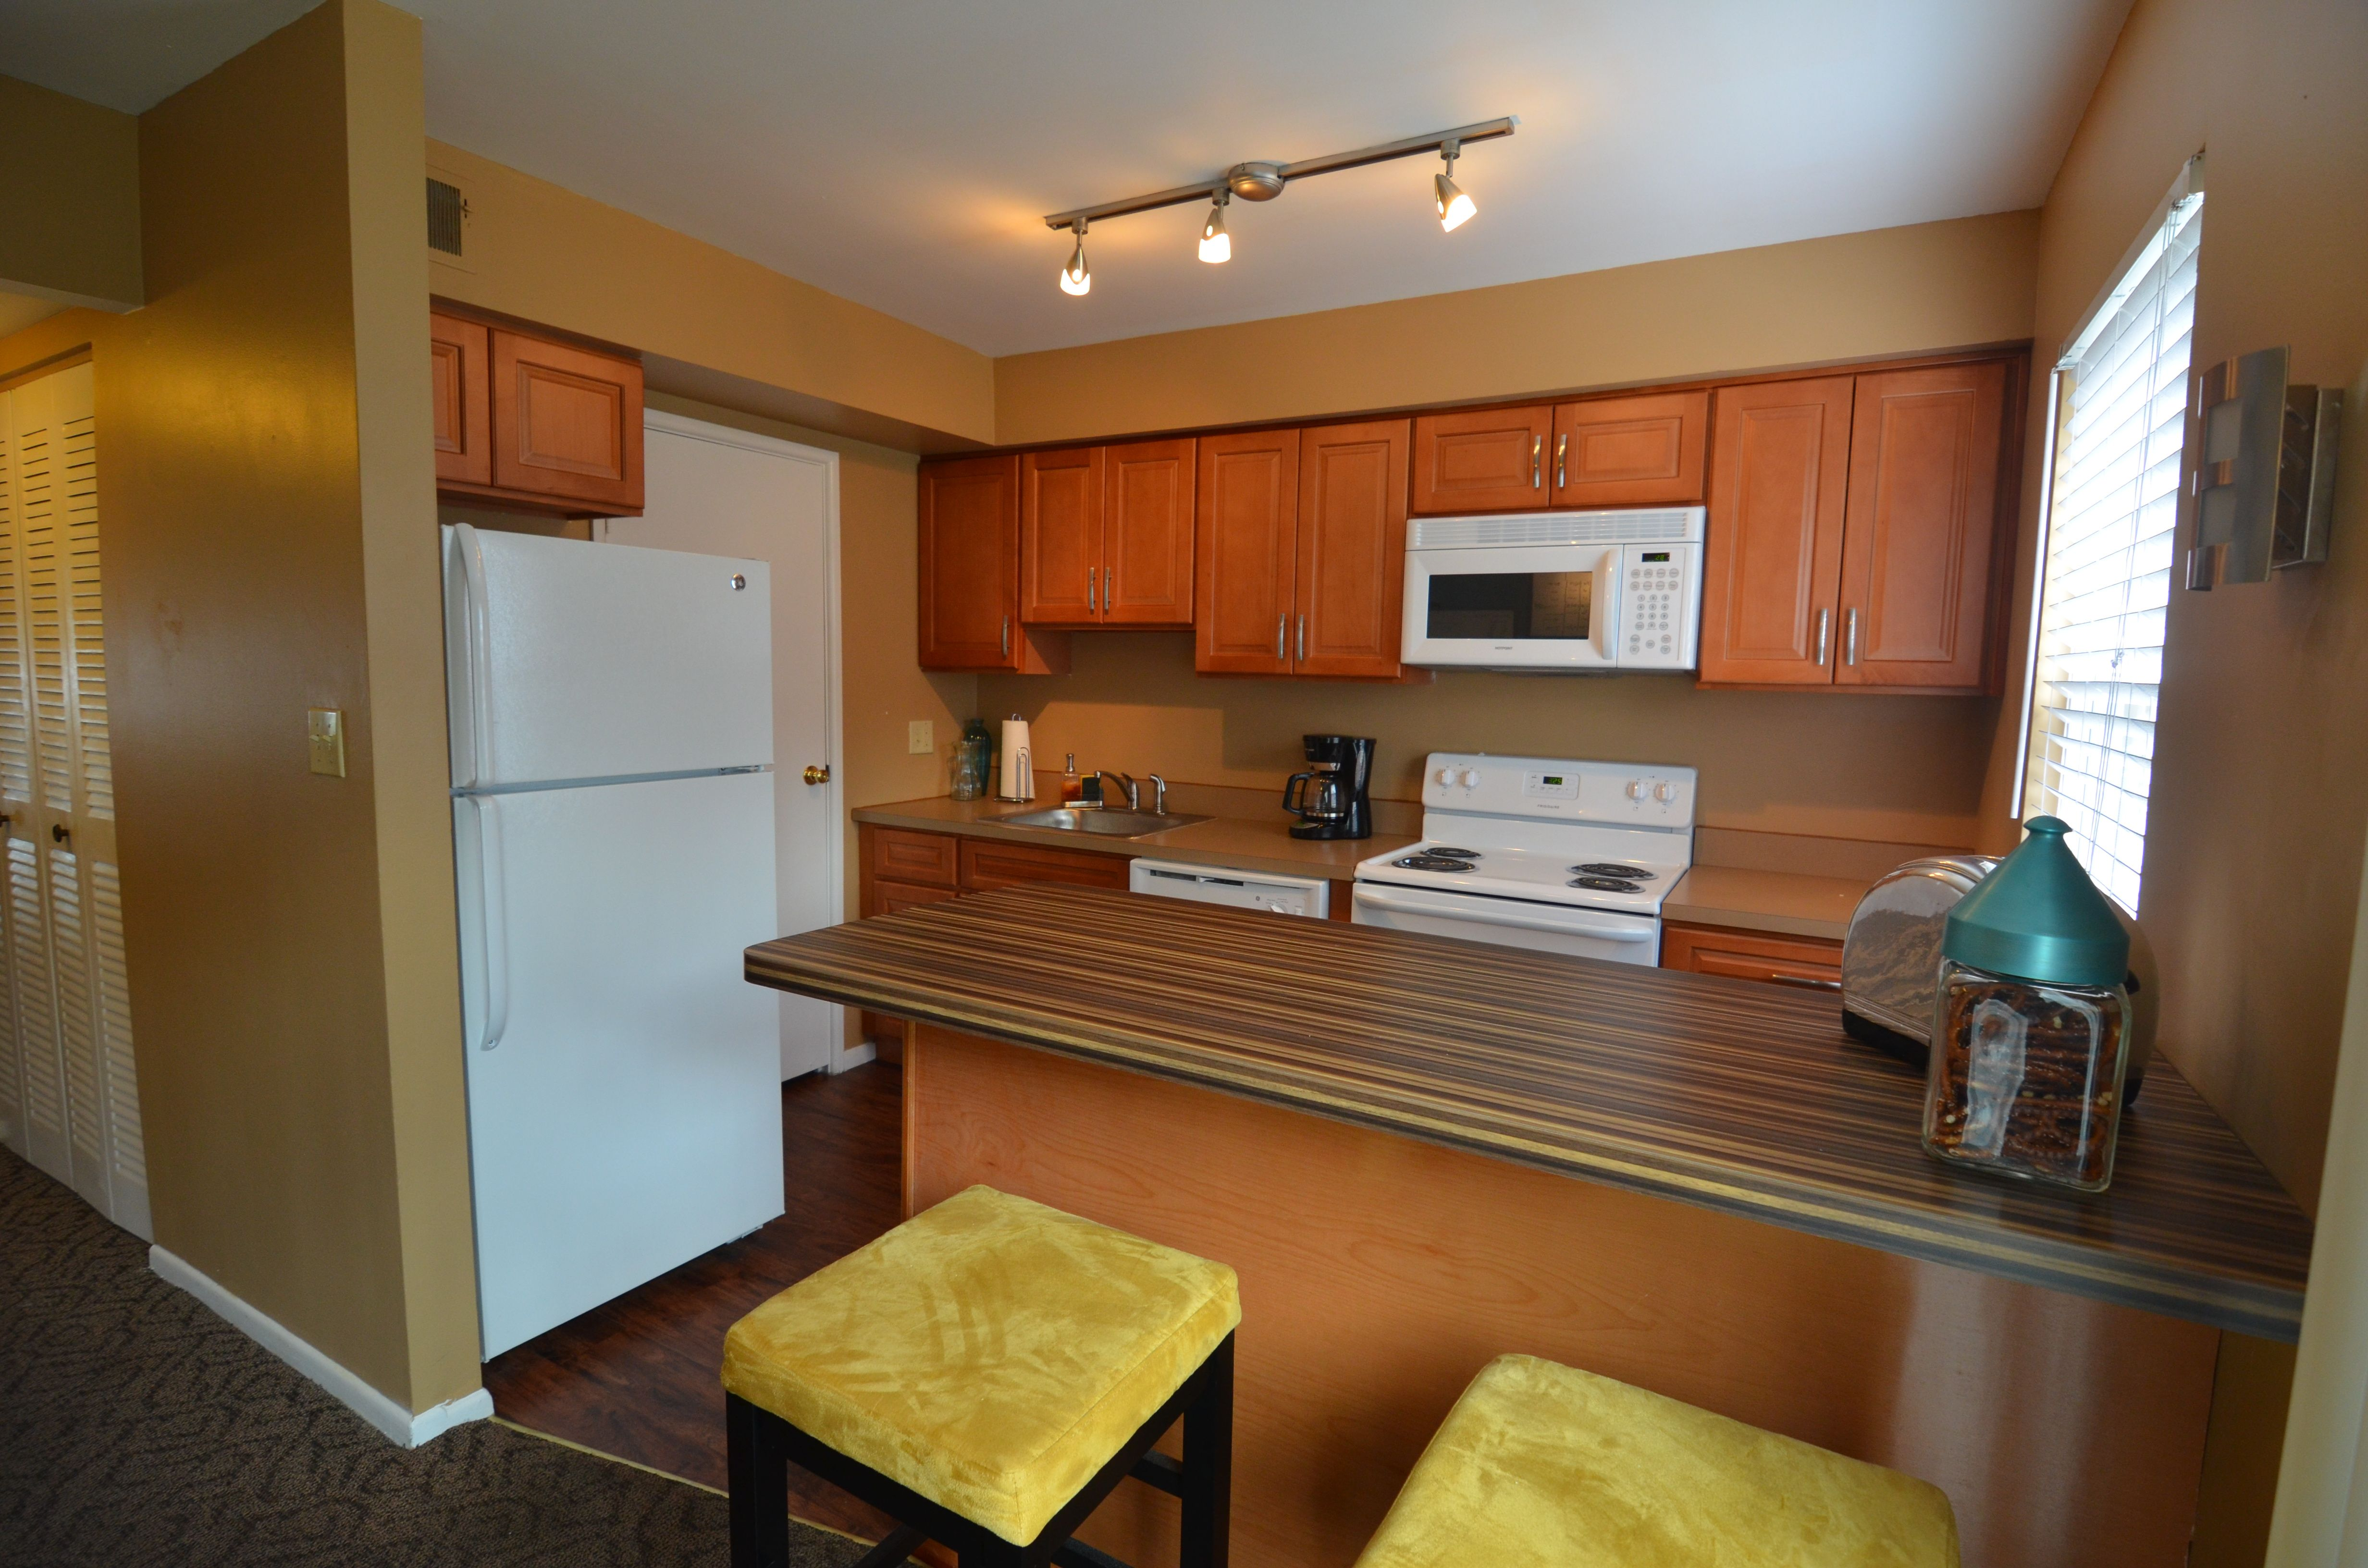 Windsor Court in Lancaster, PA   Apartments   Pinterest